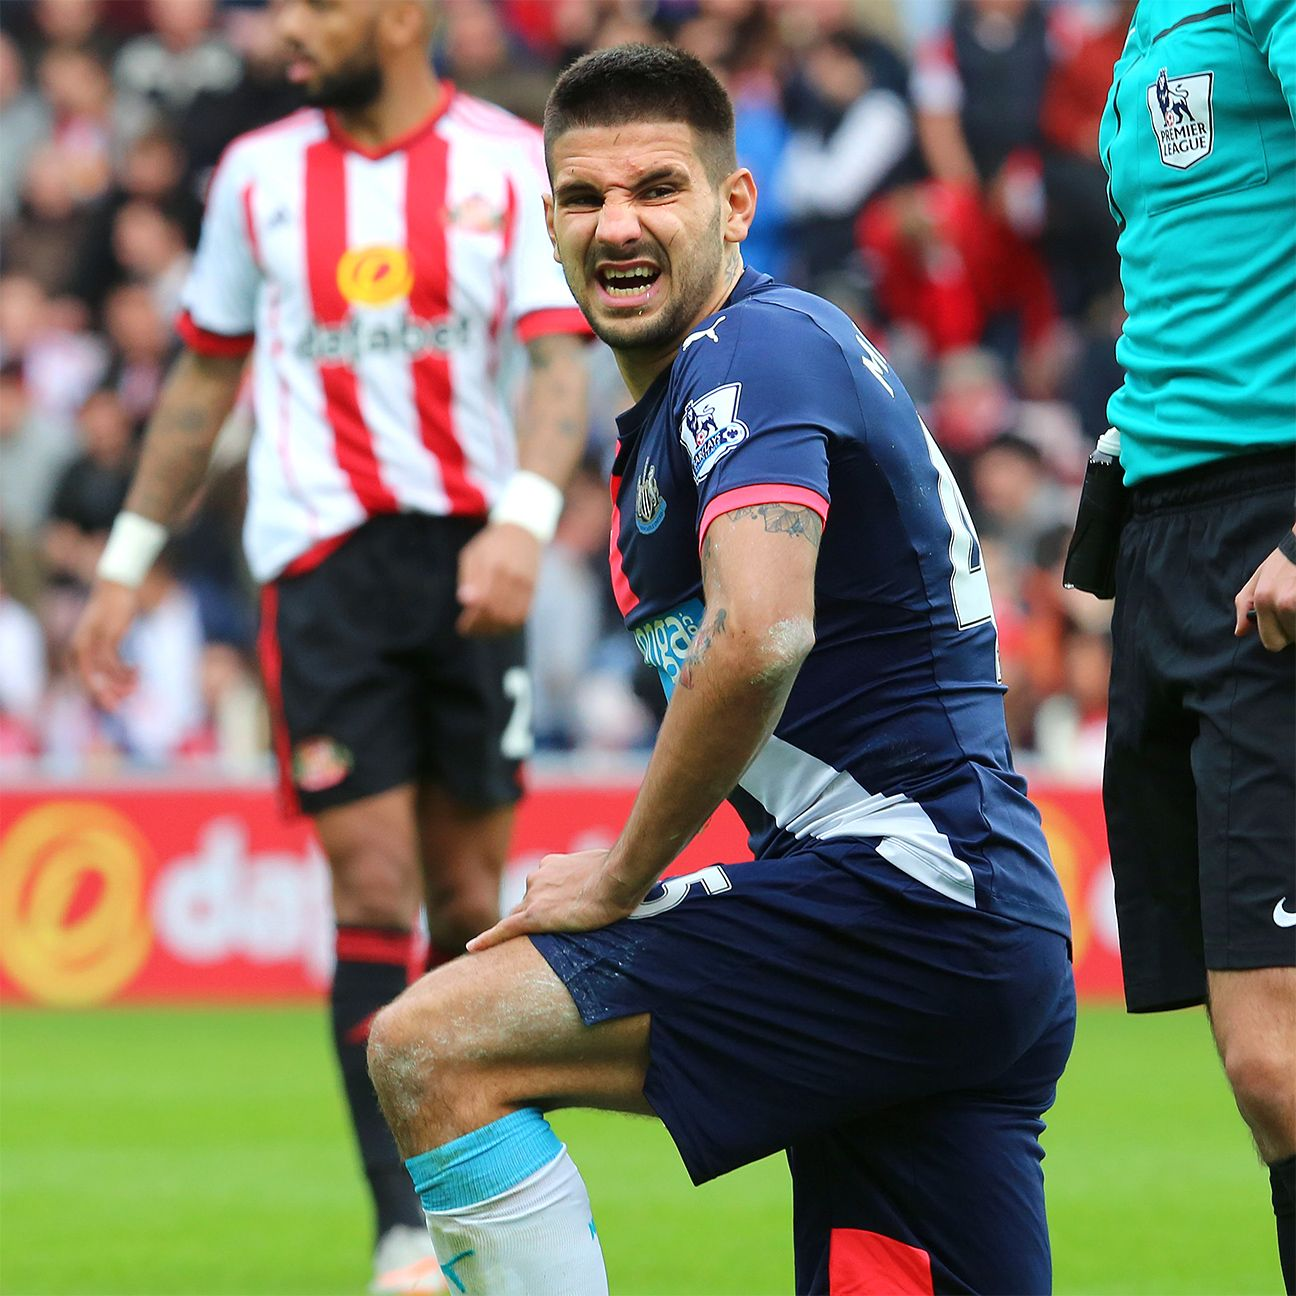 Aleksandar Mitrovic and Newcastle will be out for their second win of the season against Stoke.